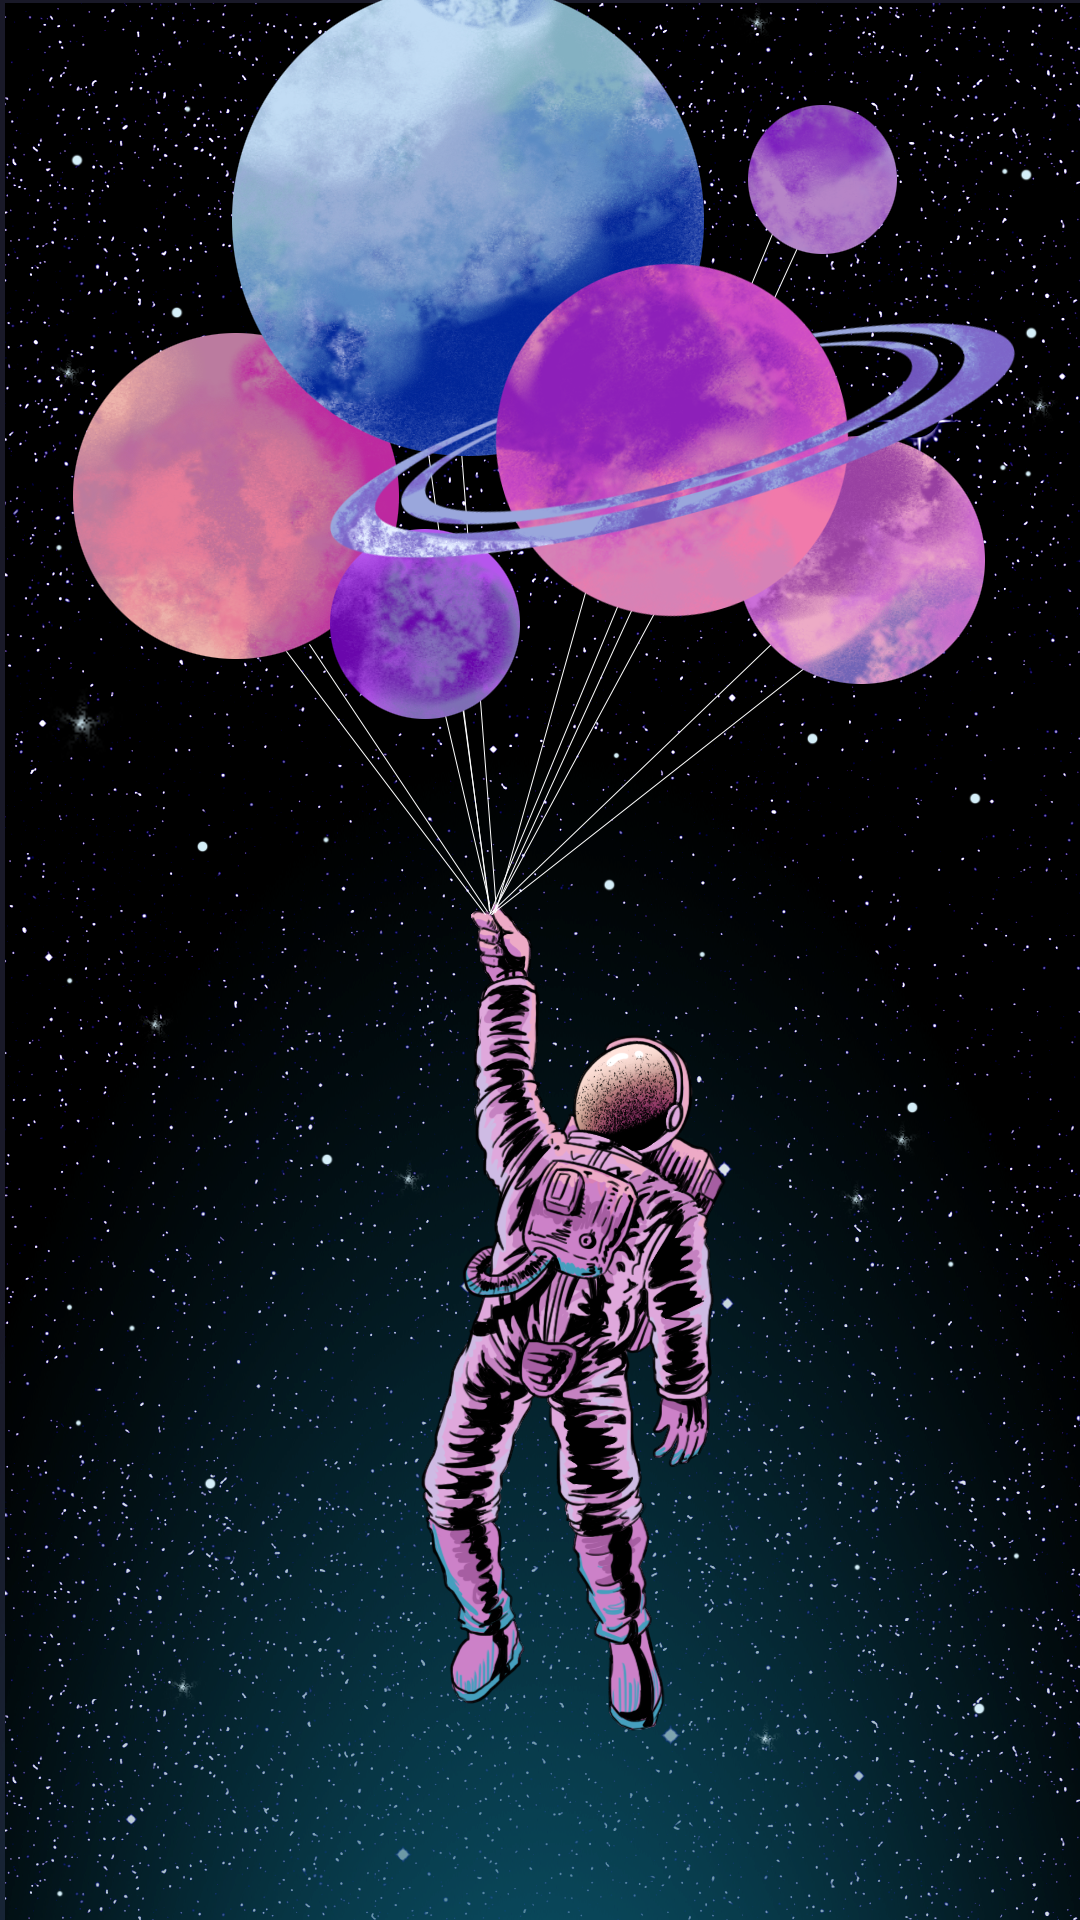 Balloon, Pink, Illustration, Graphic design, Sky, Organism